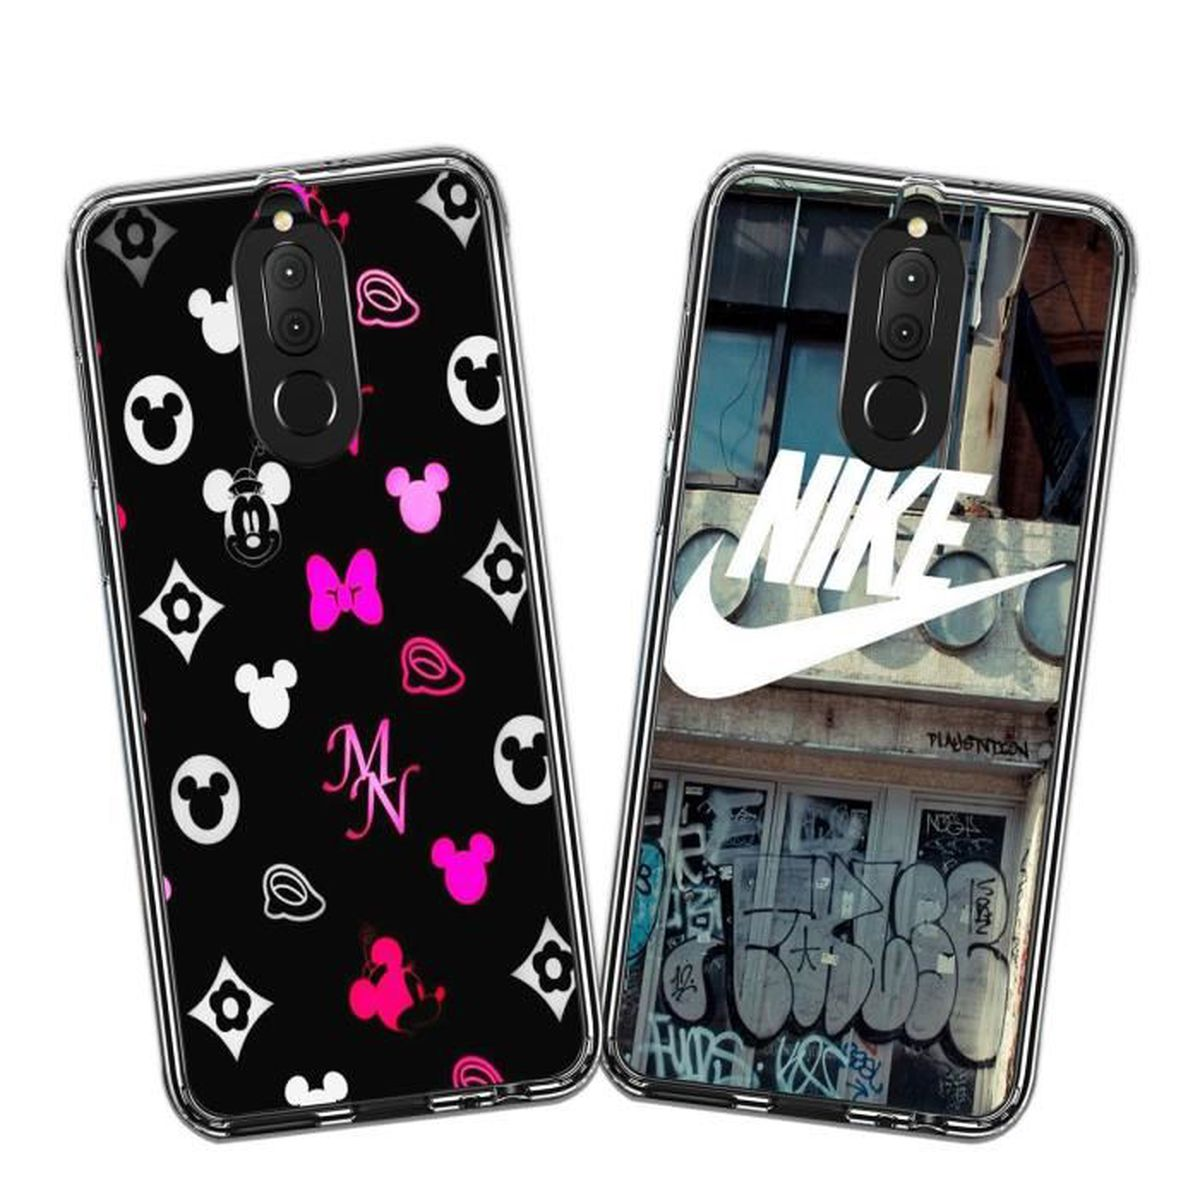 coque huawei mate 10 lite paris